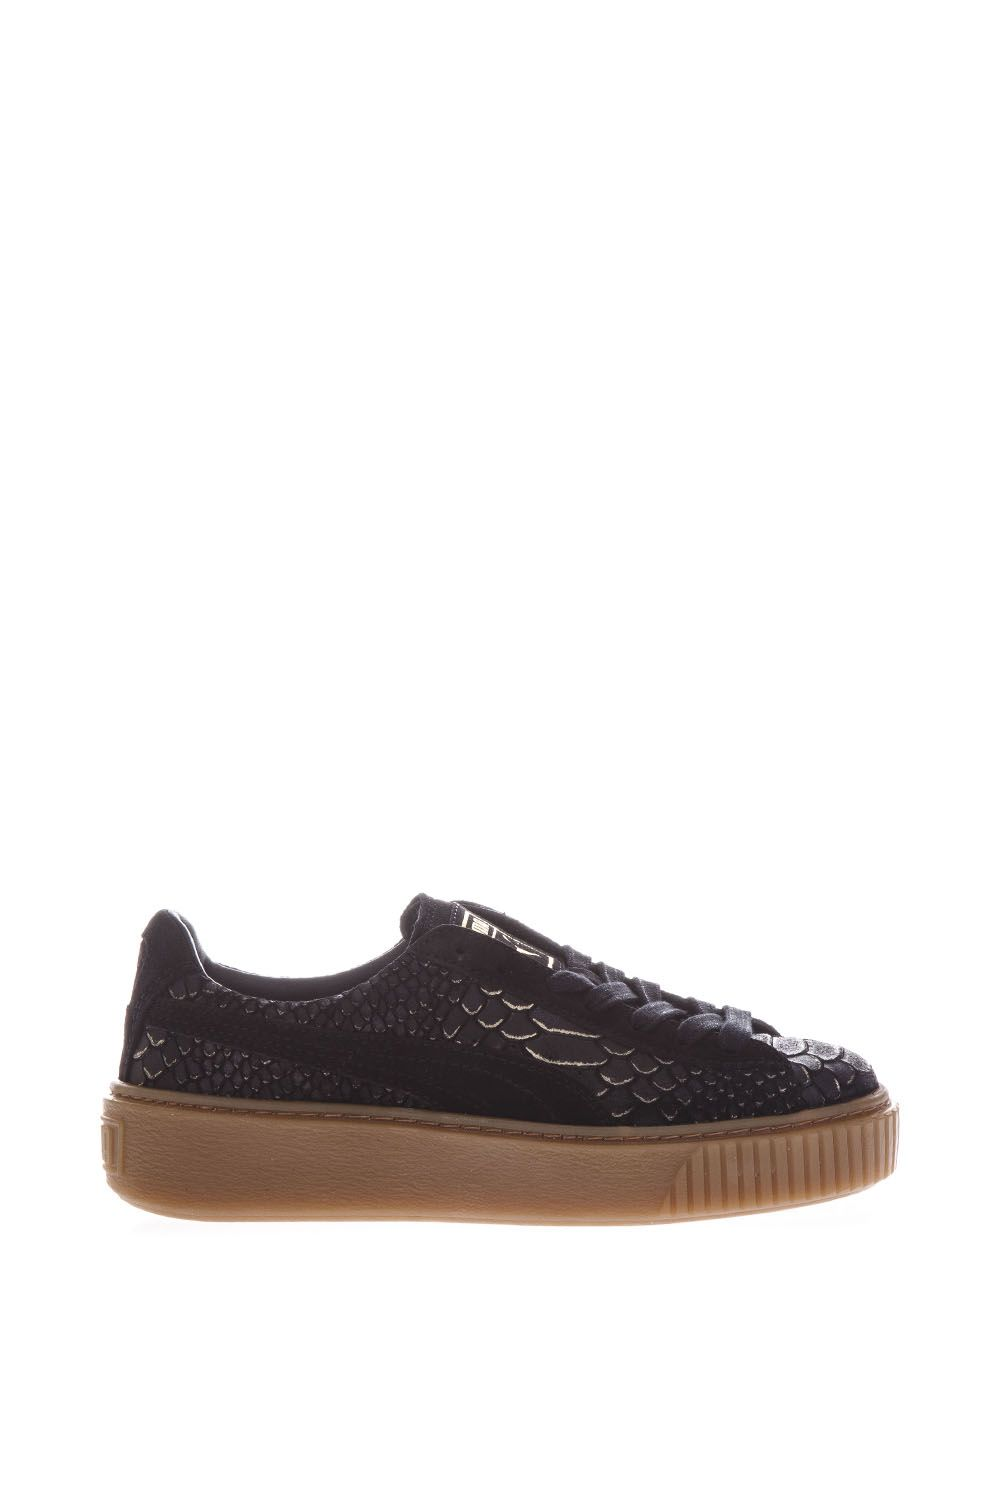 Puma Select Creepers Sneakers